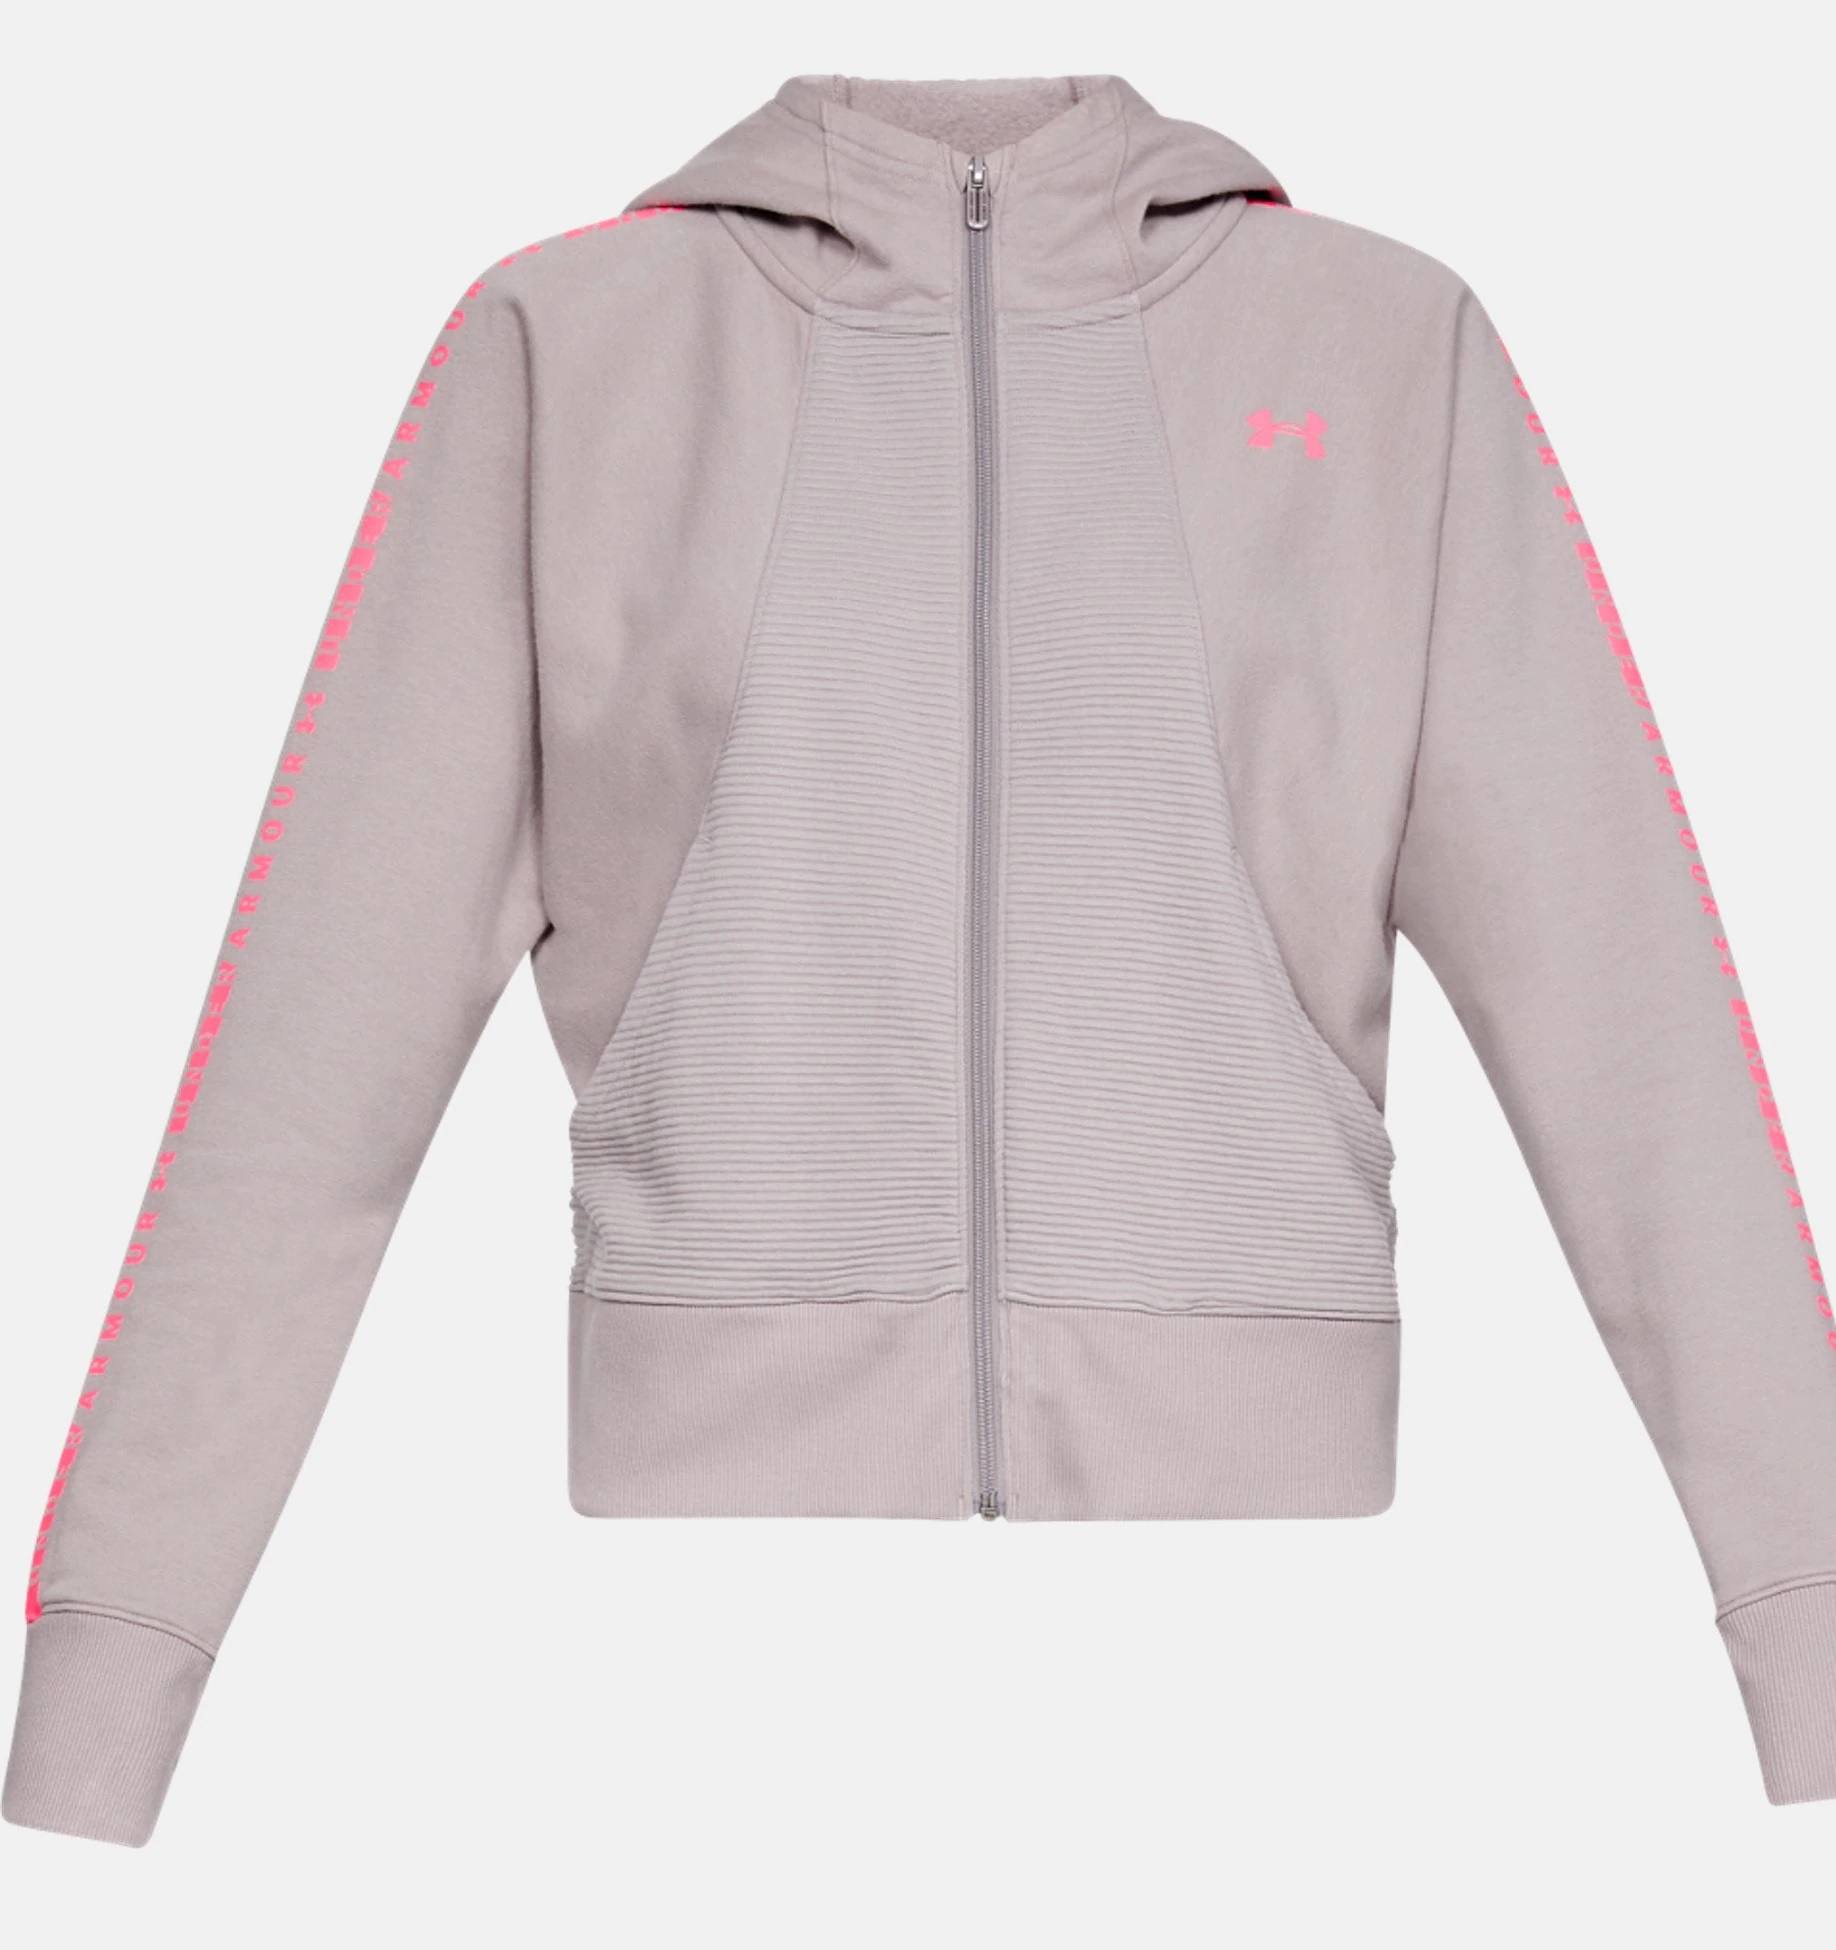 Under Armour OTTOMAN FLEECE GRAPHIC mikina, sivá